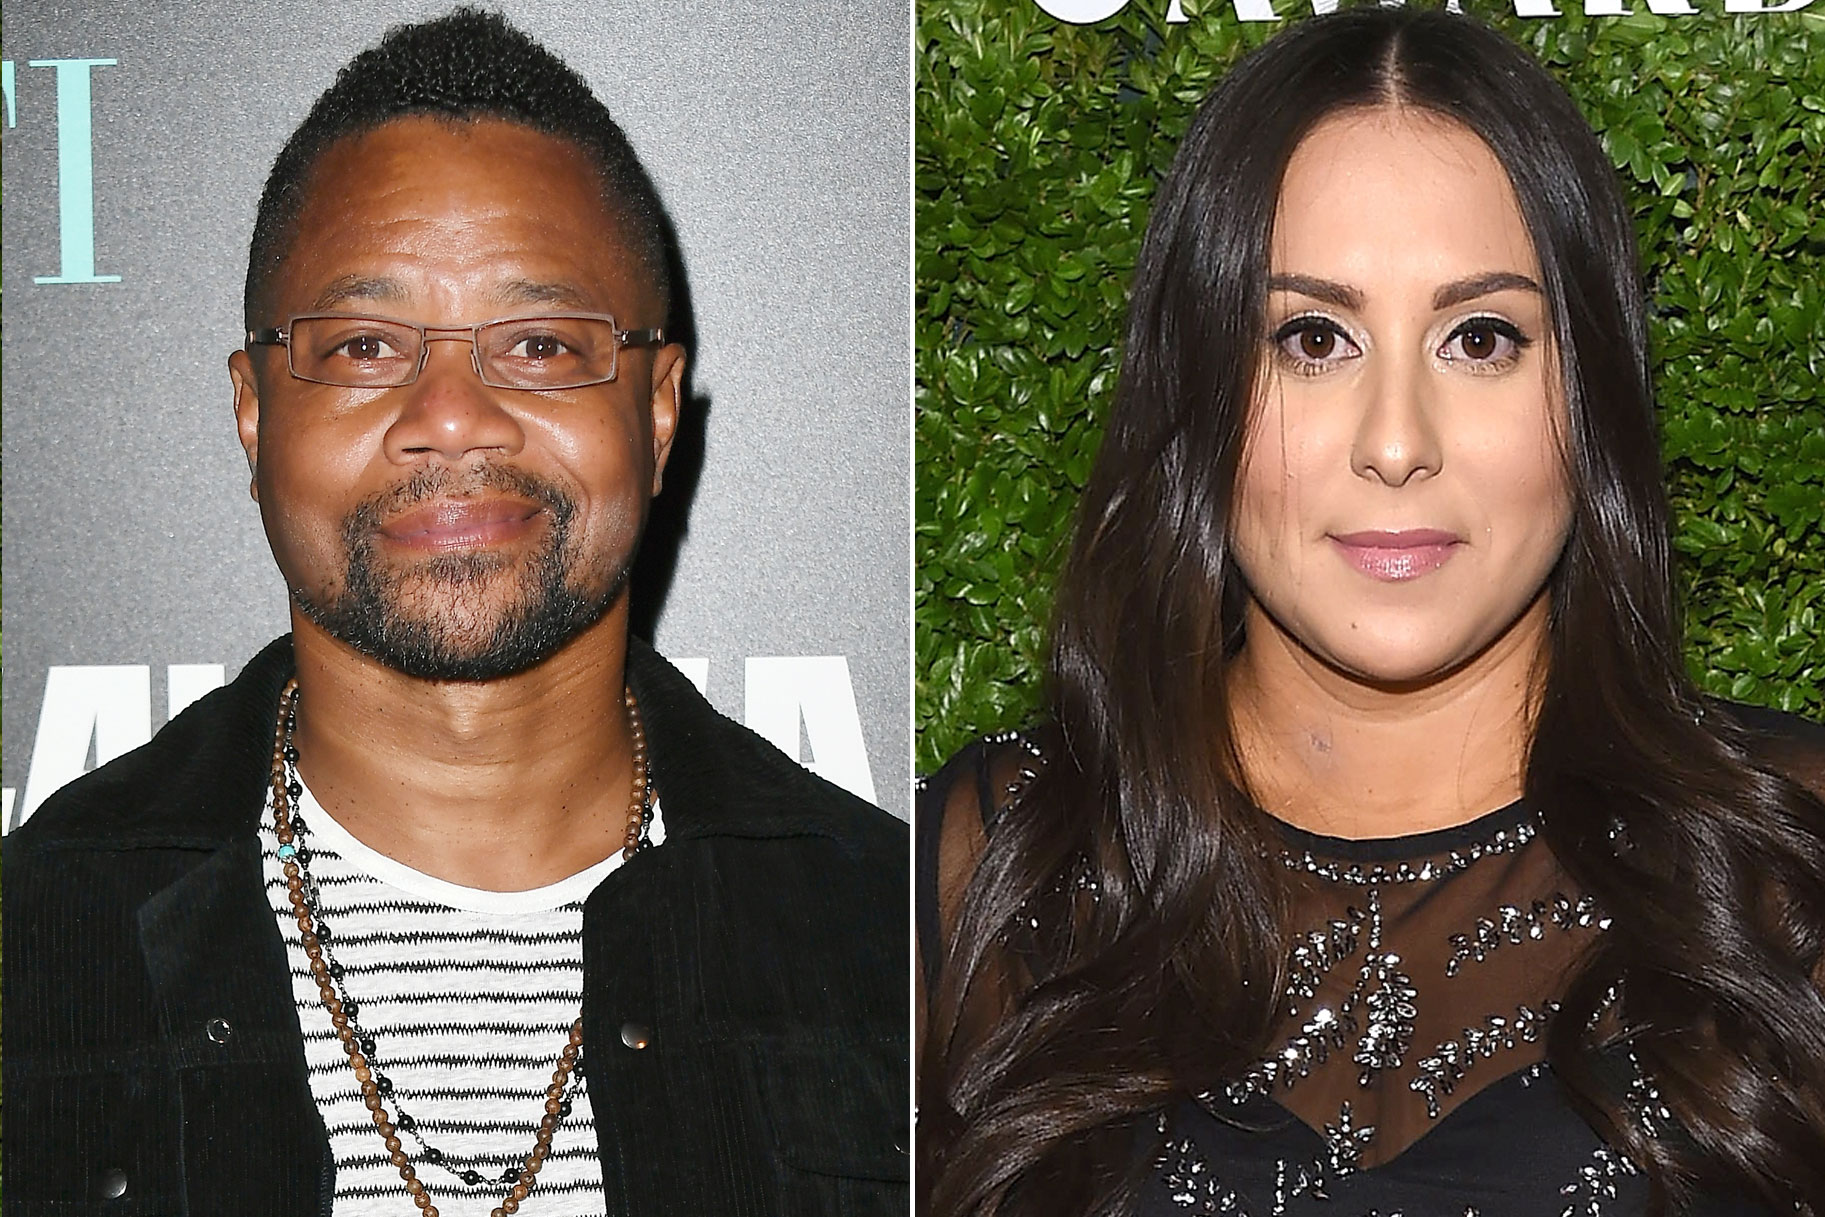 Cuba Gooding Jr. and Claudia Oshry